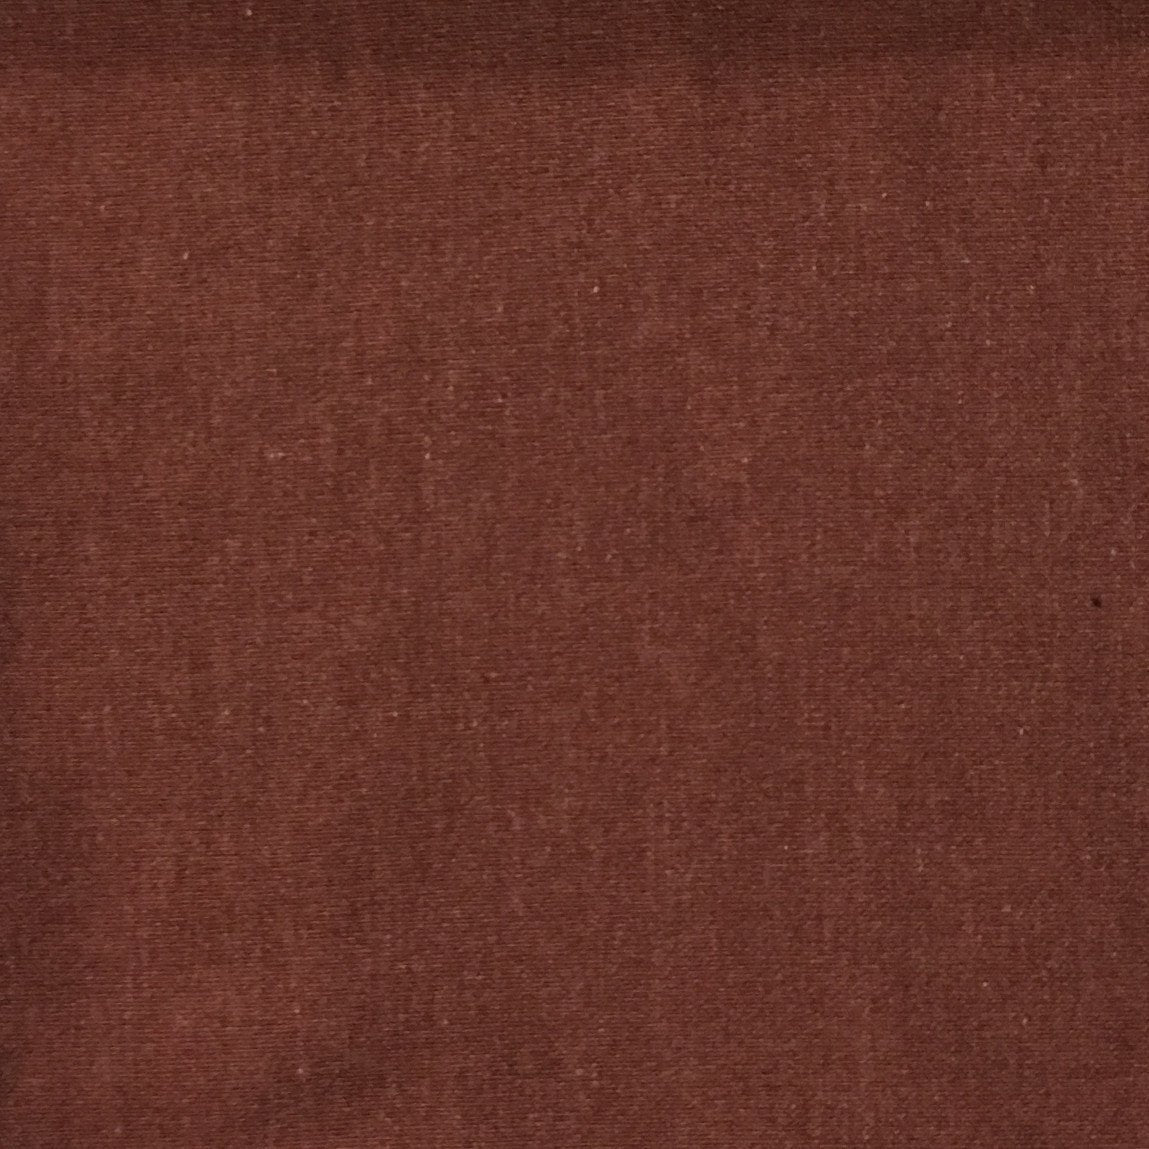 Aston cotton polyester blend upholstery fabric by the yard for By the yard fabric